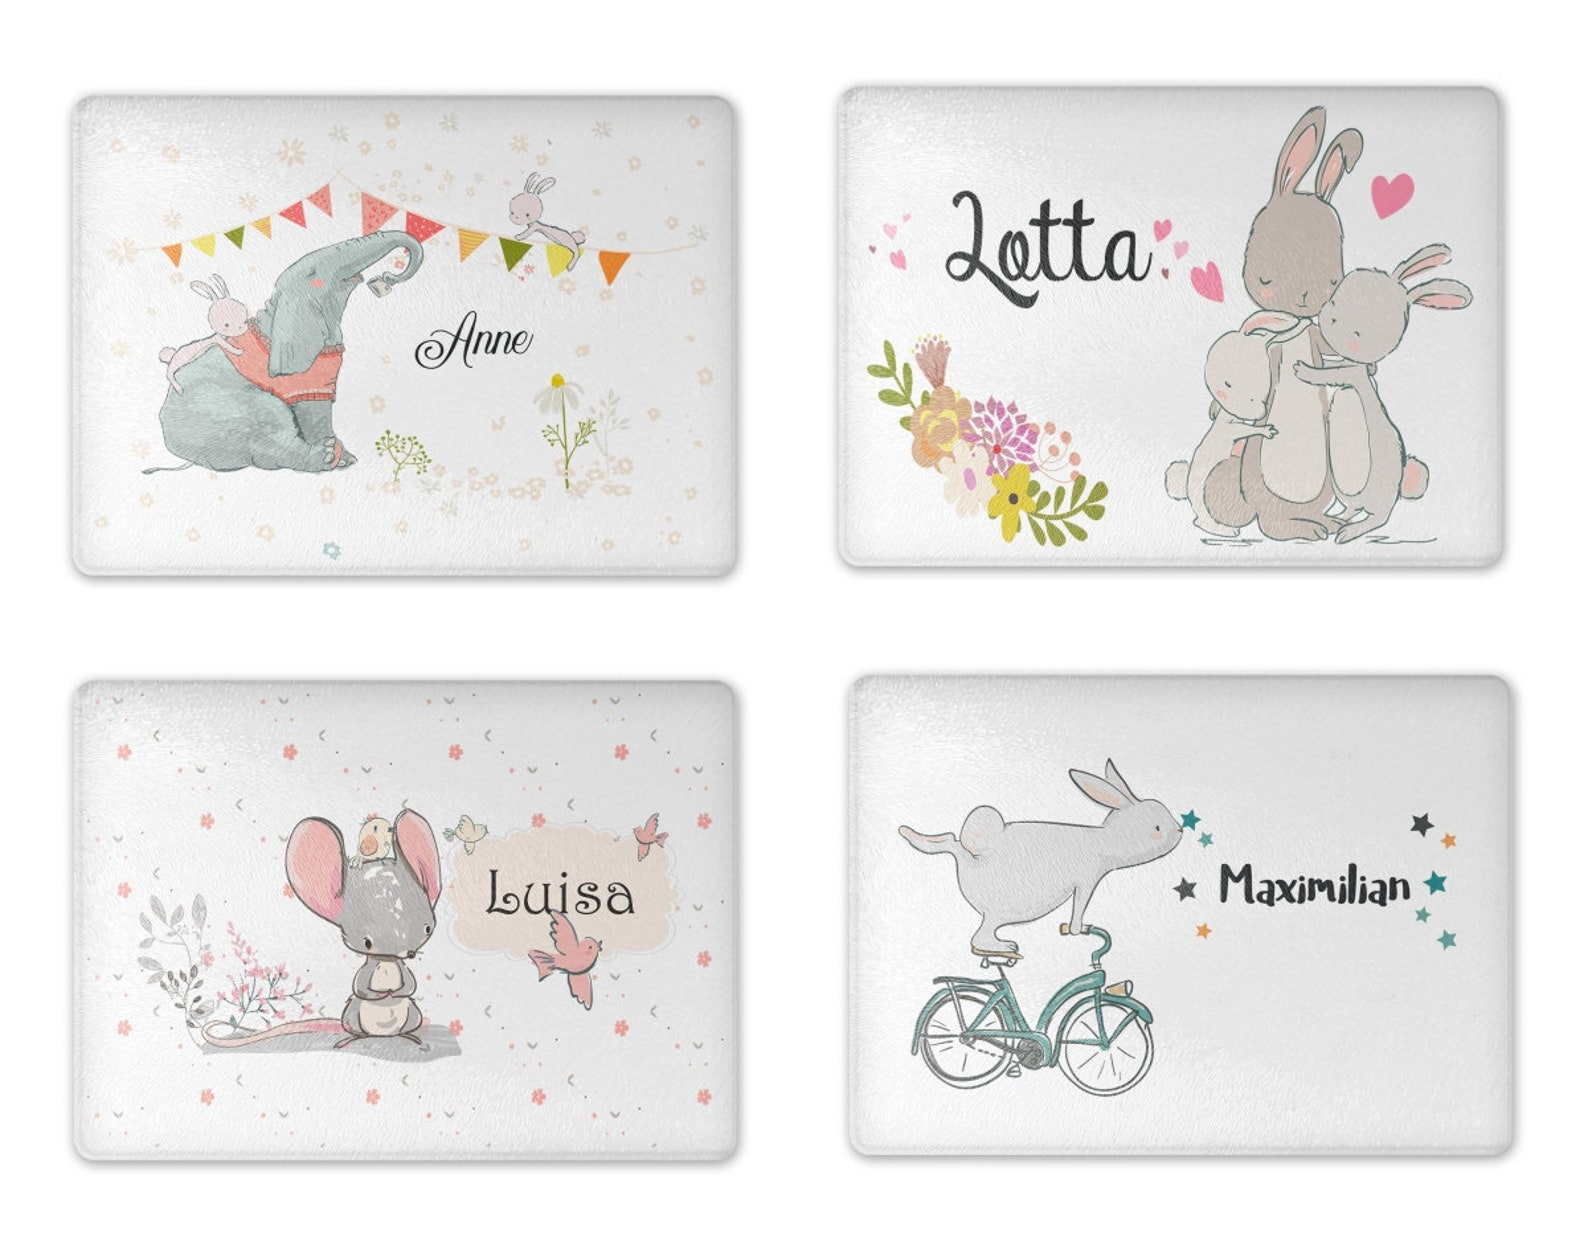 Board sperboard breakfast board gift breadboard bunny mouse elephant kids for girl boy personalized with name-n printed